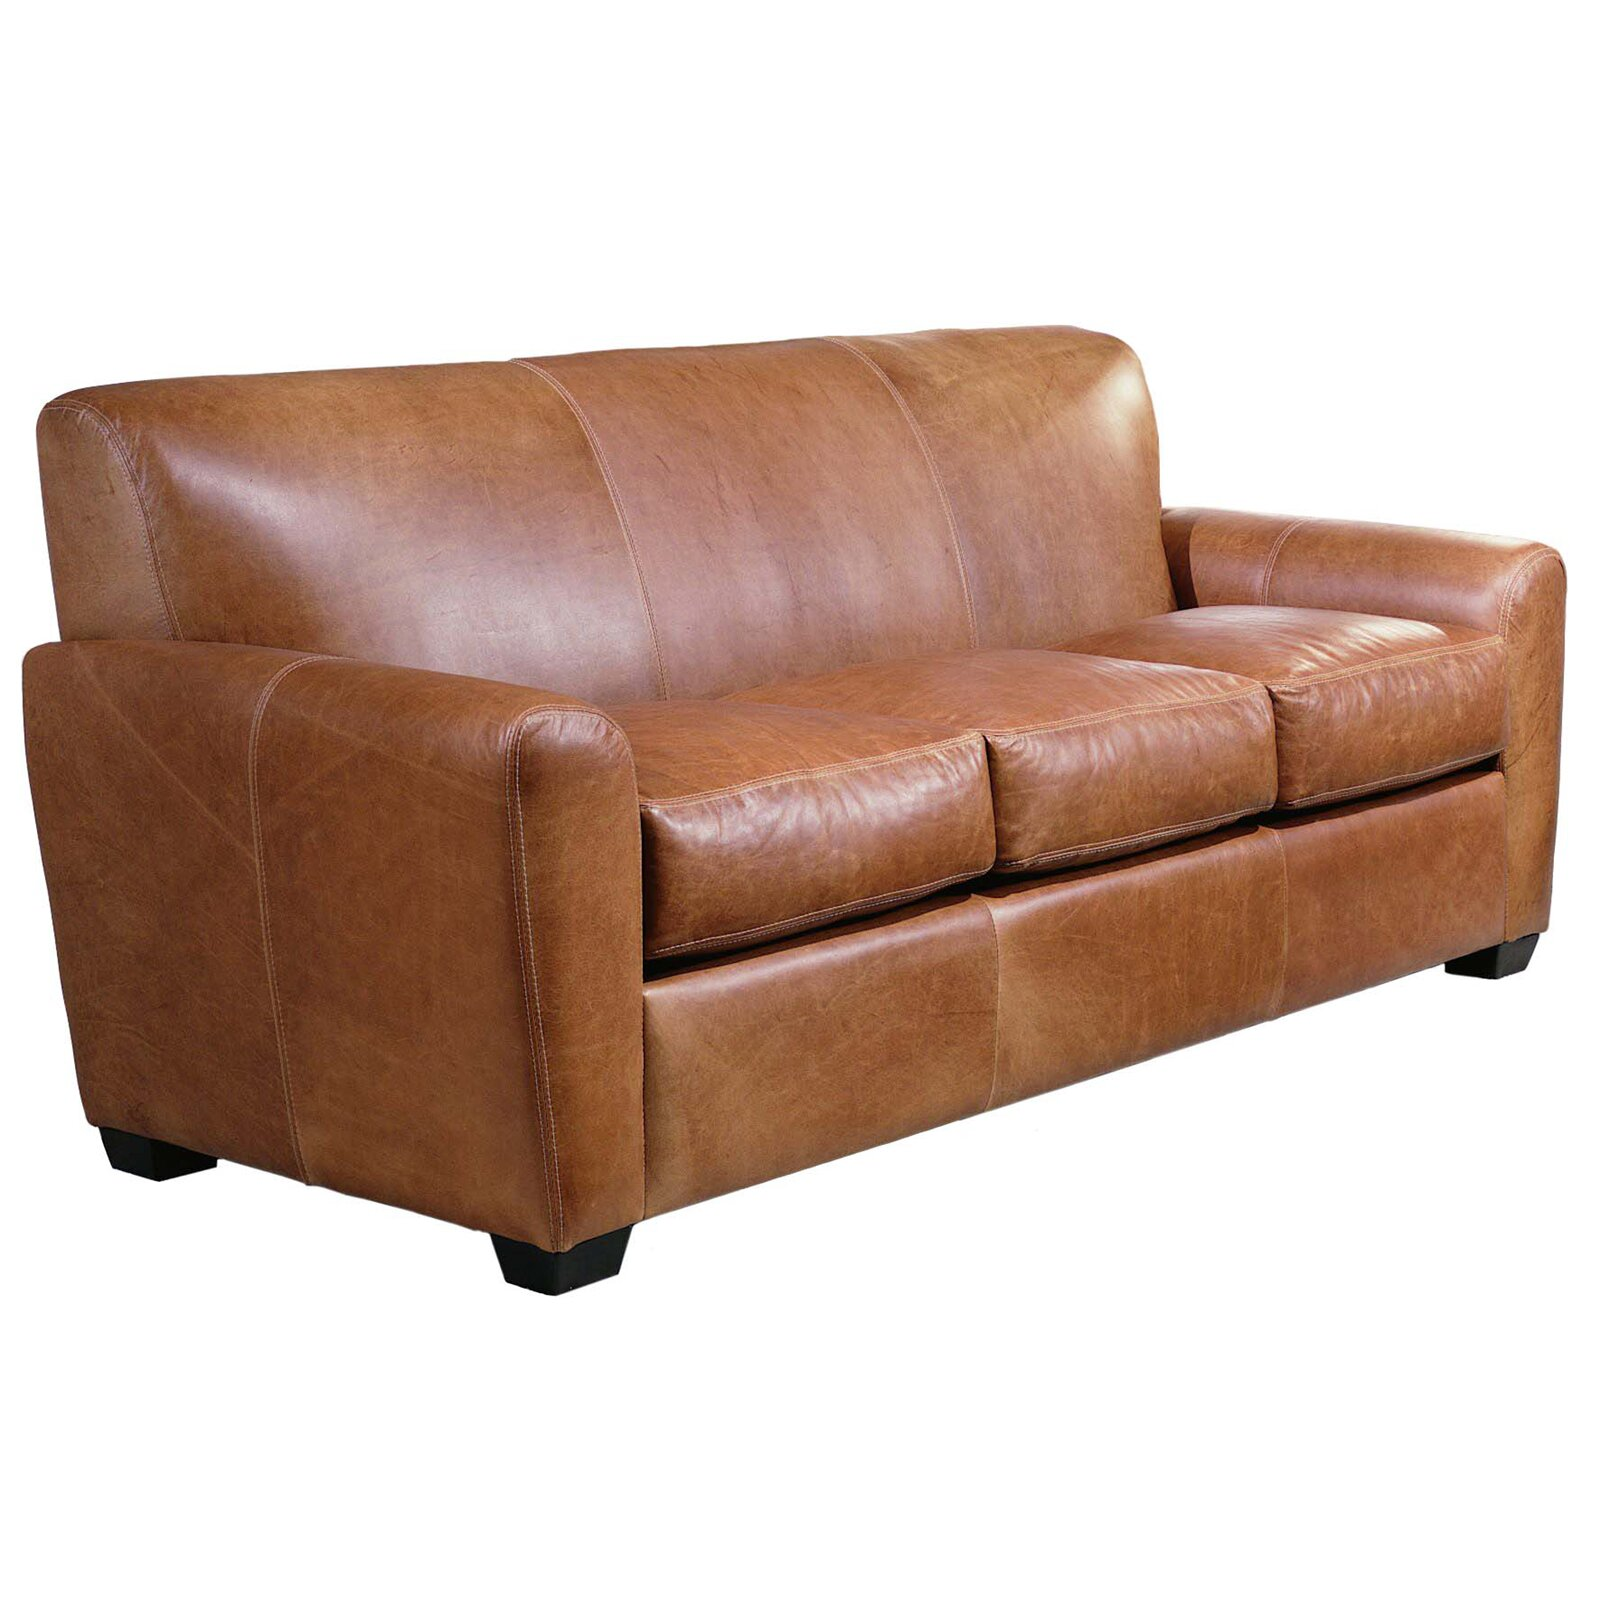 Omnia Leather Jackson Leather Sleeper Sofa & Reviews